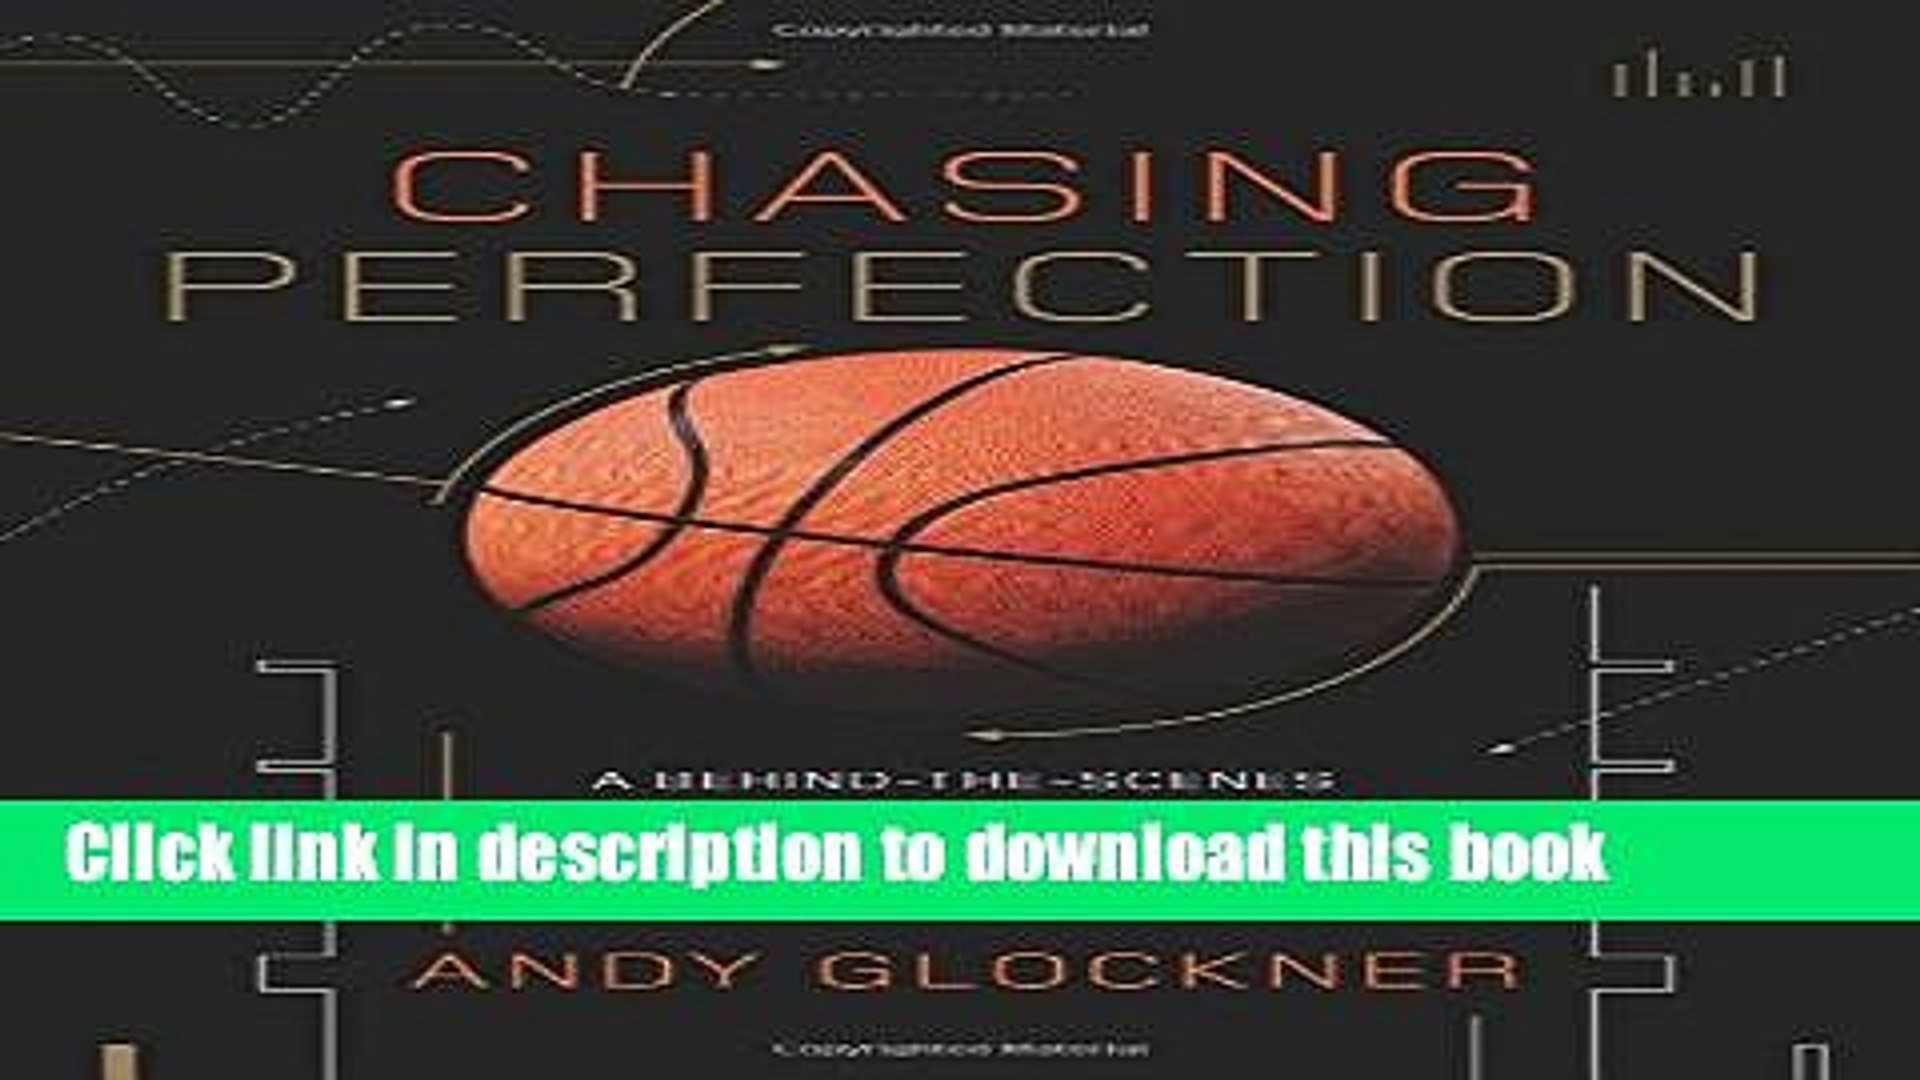 [Popular] Books Chasing Perfection: A Behind-the-Scenes Look at the High-Stakes Game of Creating